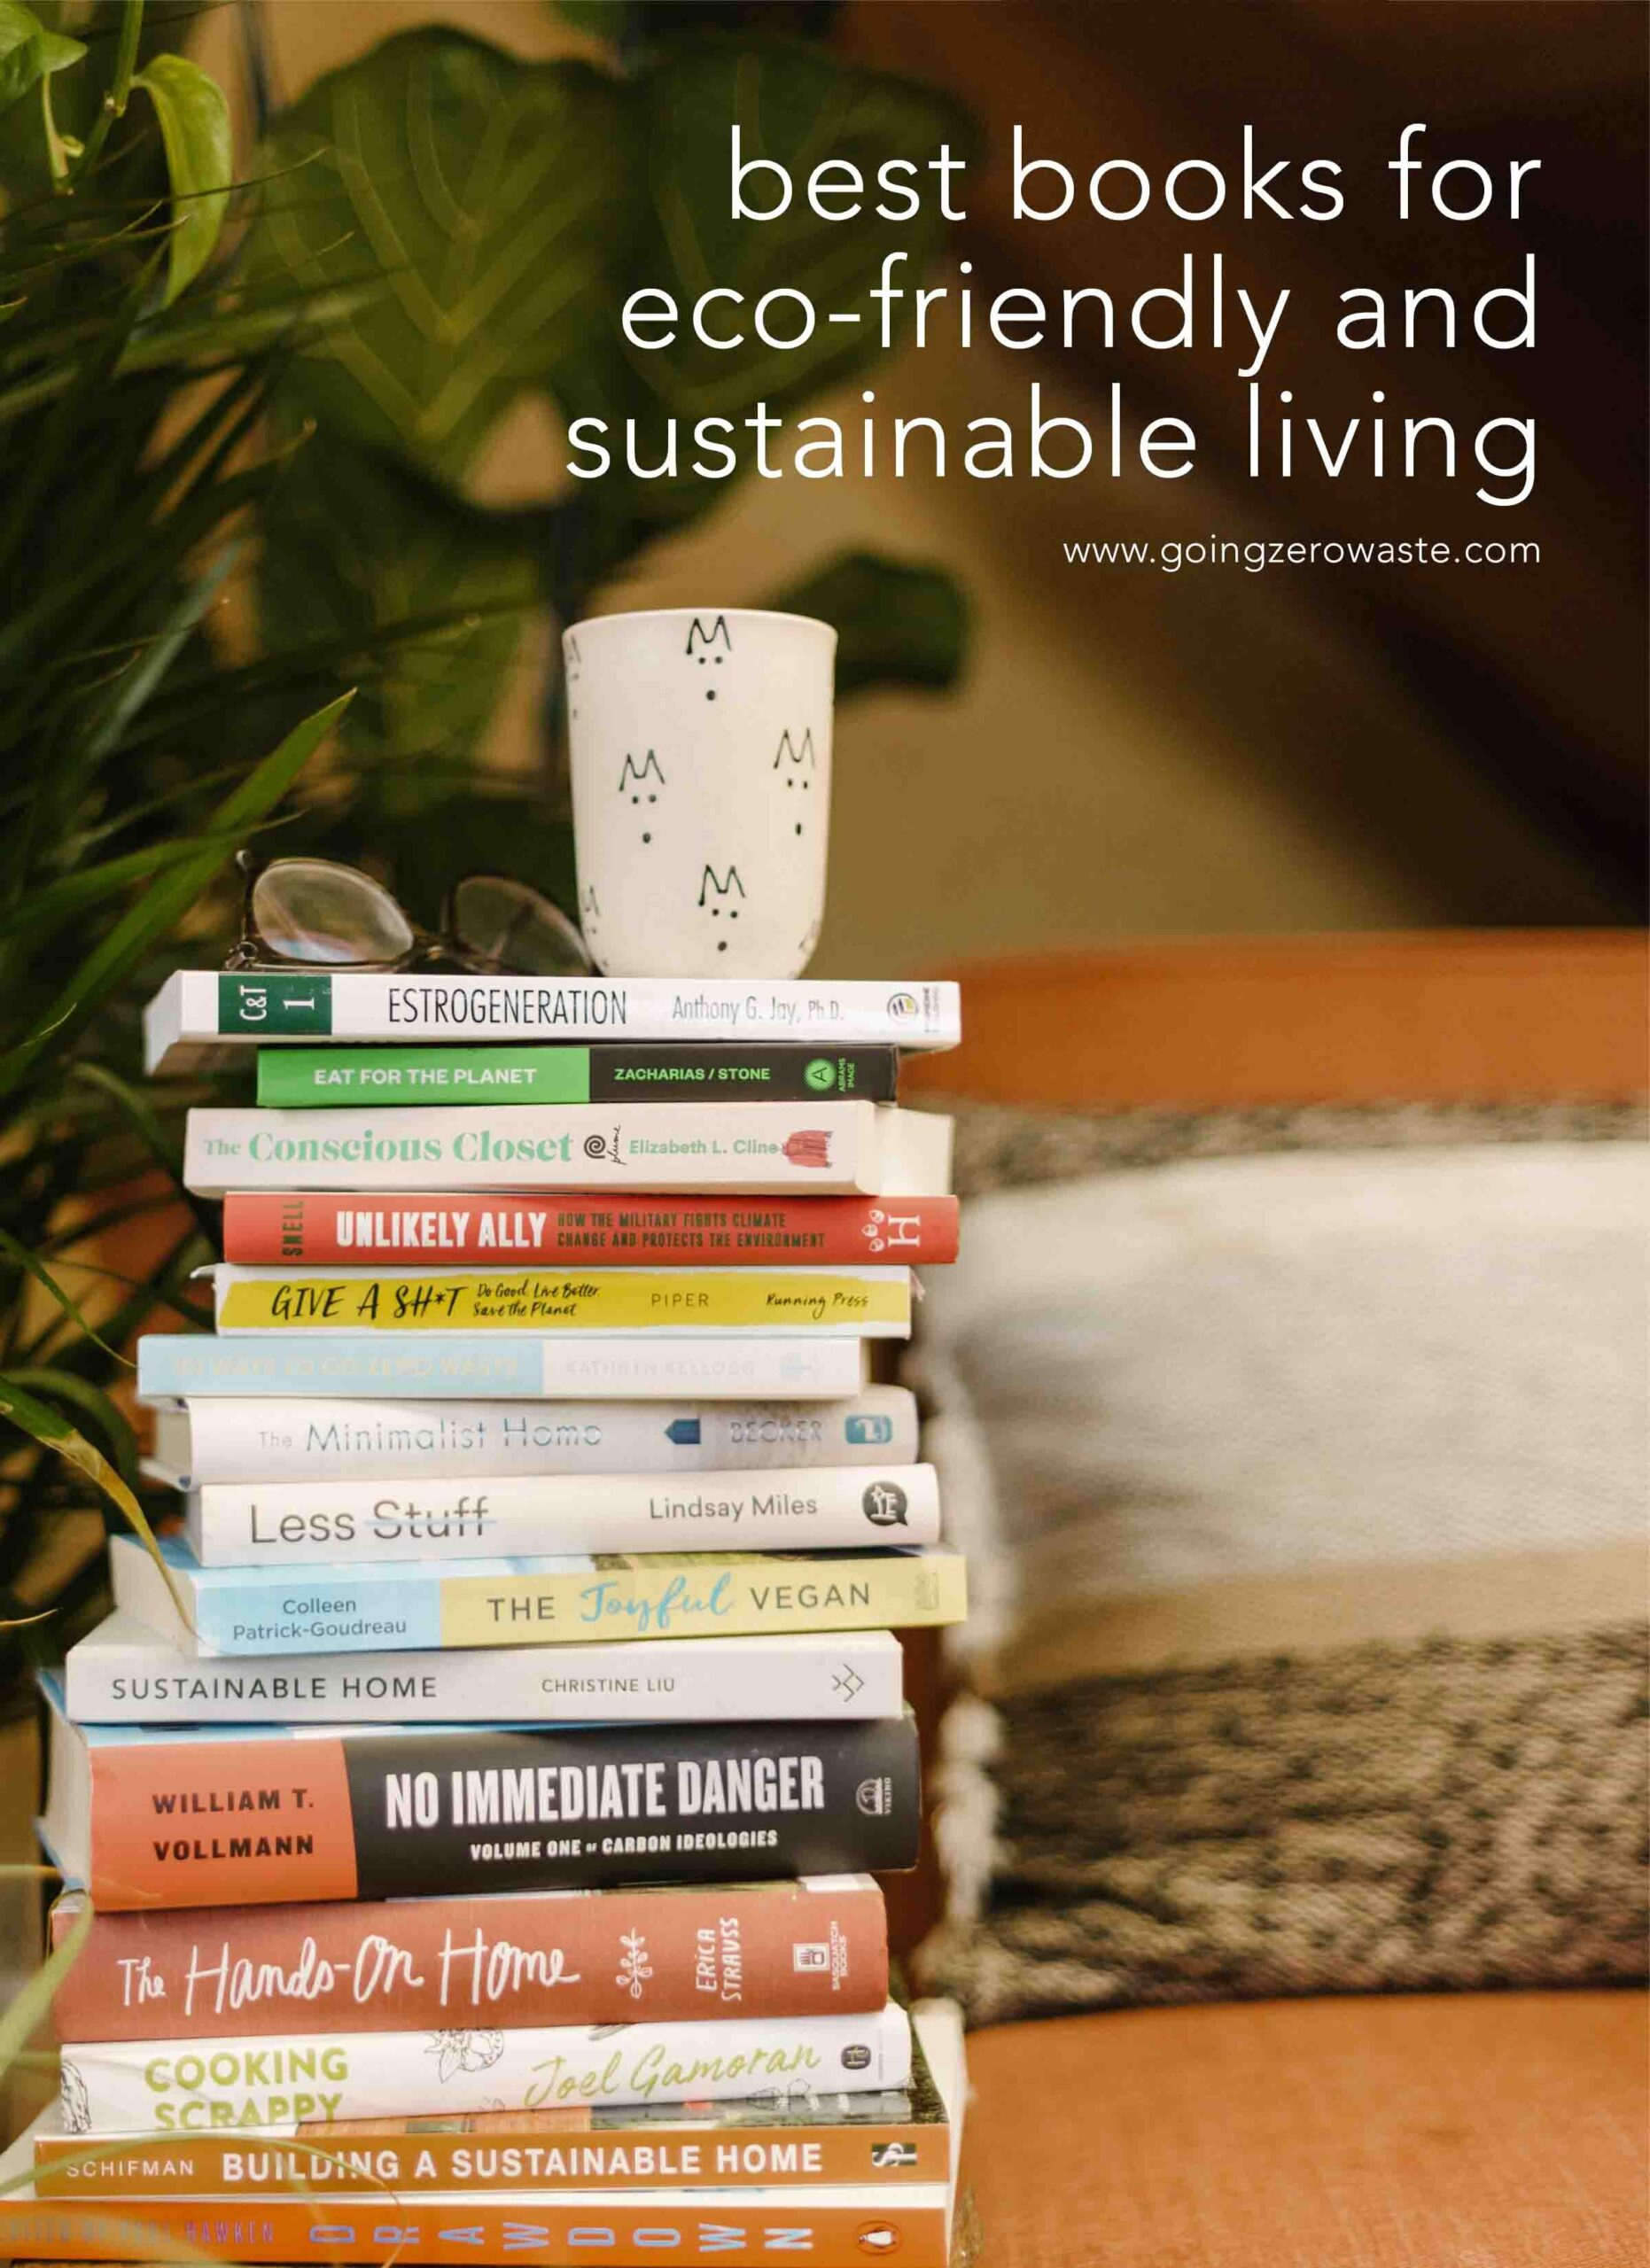 Best Books For Eco-Friendly and Sustainable Living #BookClub from www.goingzerowaste.com #zerowaste #ecofriendly #gogreen #sustainable